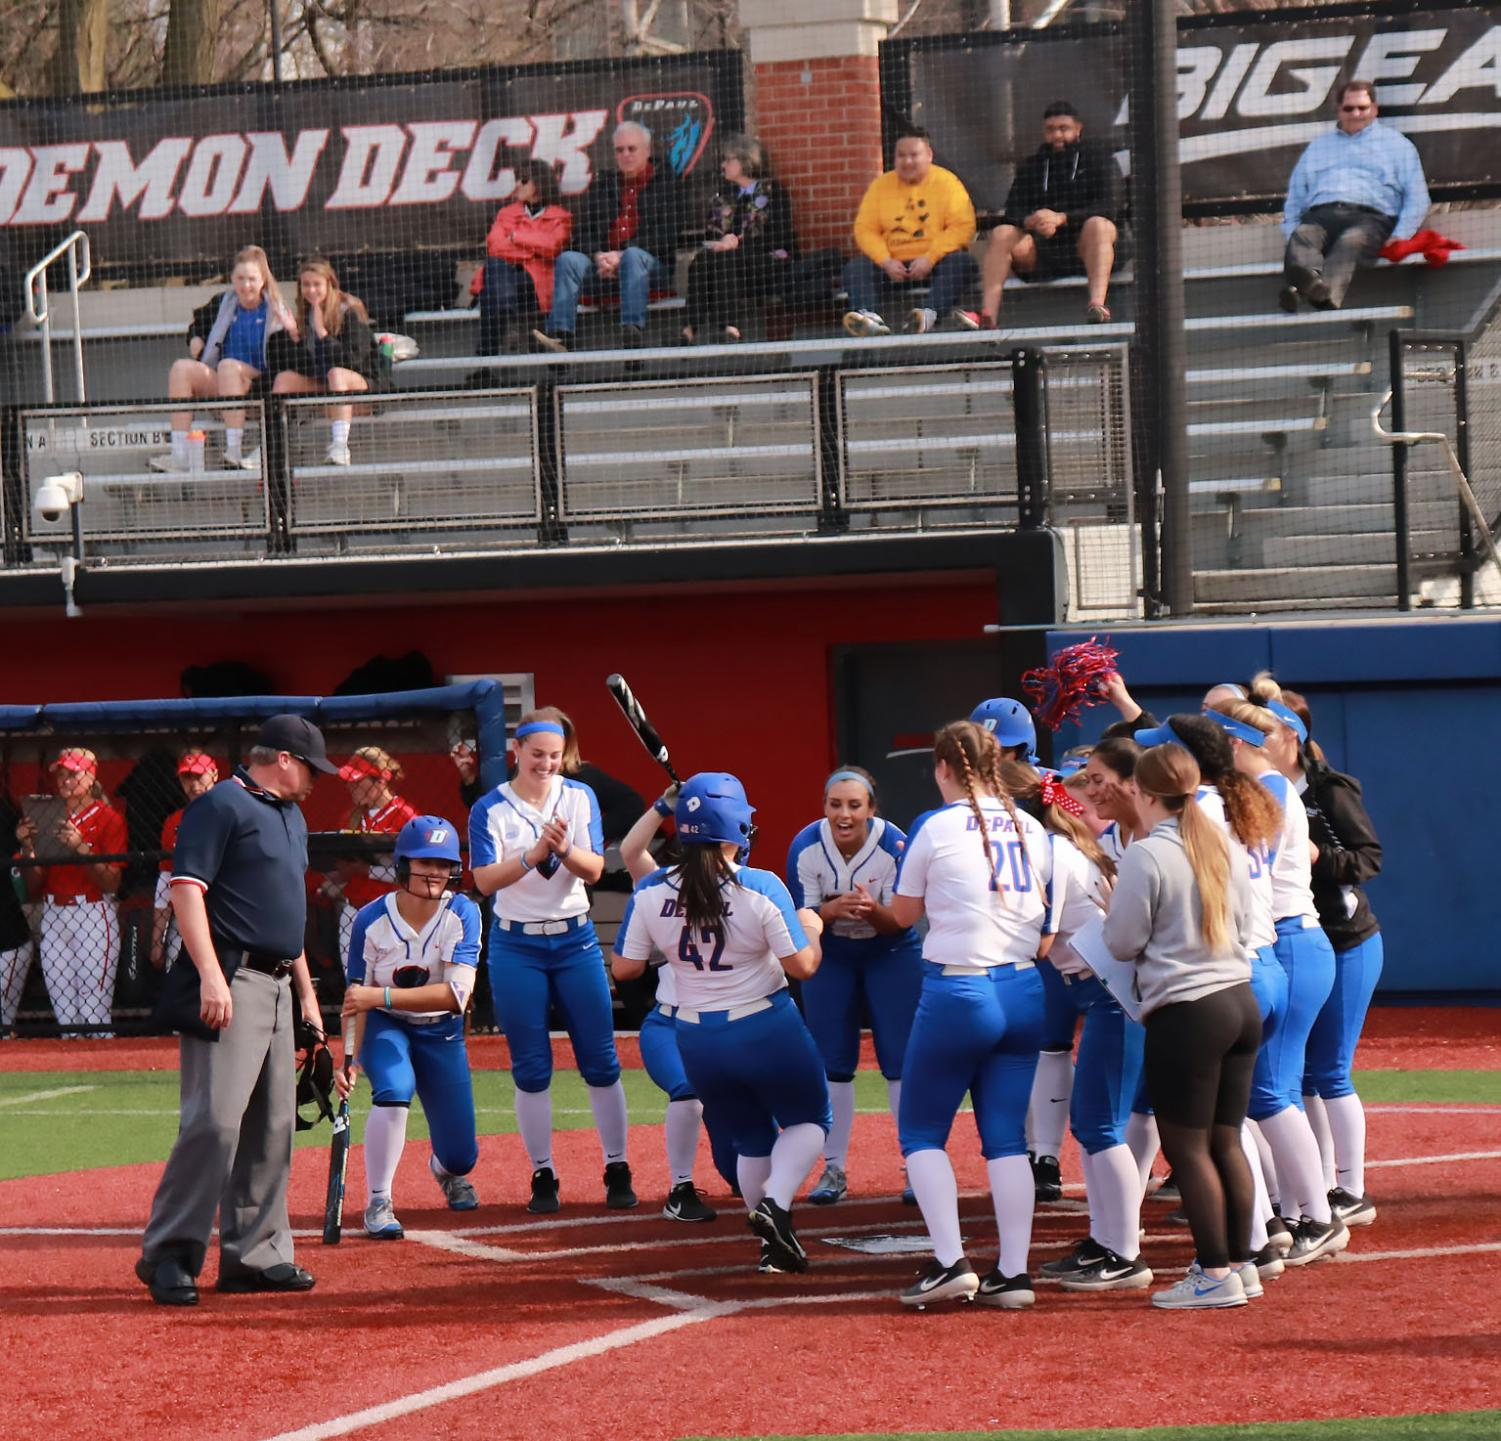 The DePaul softball team celebrates at home plate after the game winning run was driven in extra innings. DePaul defeated Illinois State 6-5 on Tuesday at Cacciatore Staduim Maria Guerrero/ The DePaulia